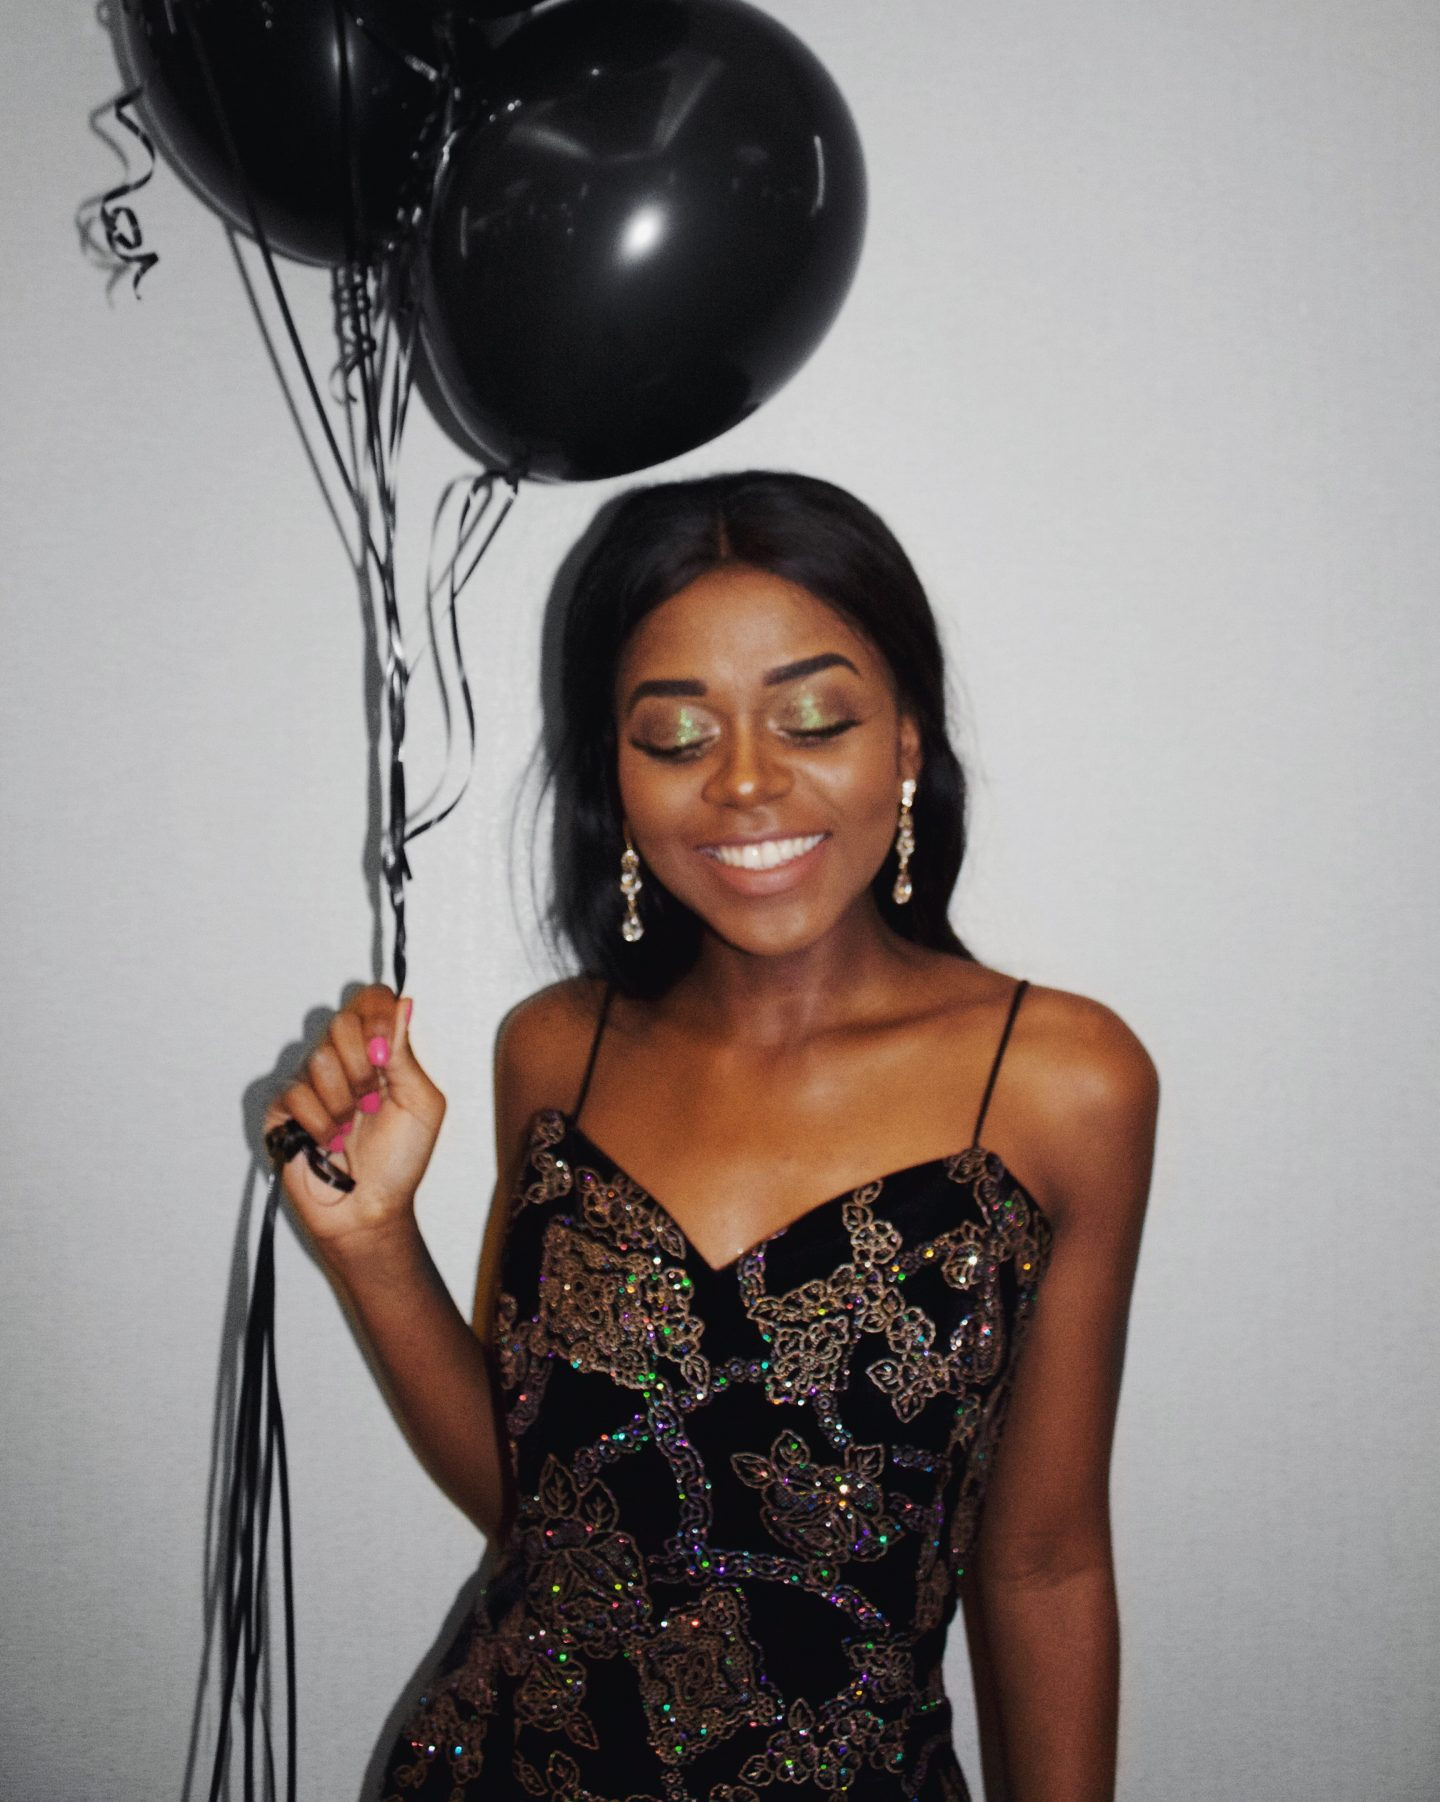 20th birthday, glitter dress, ballons